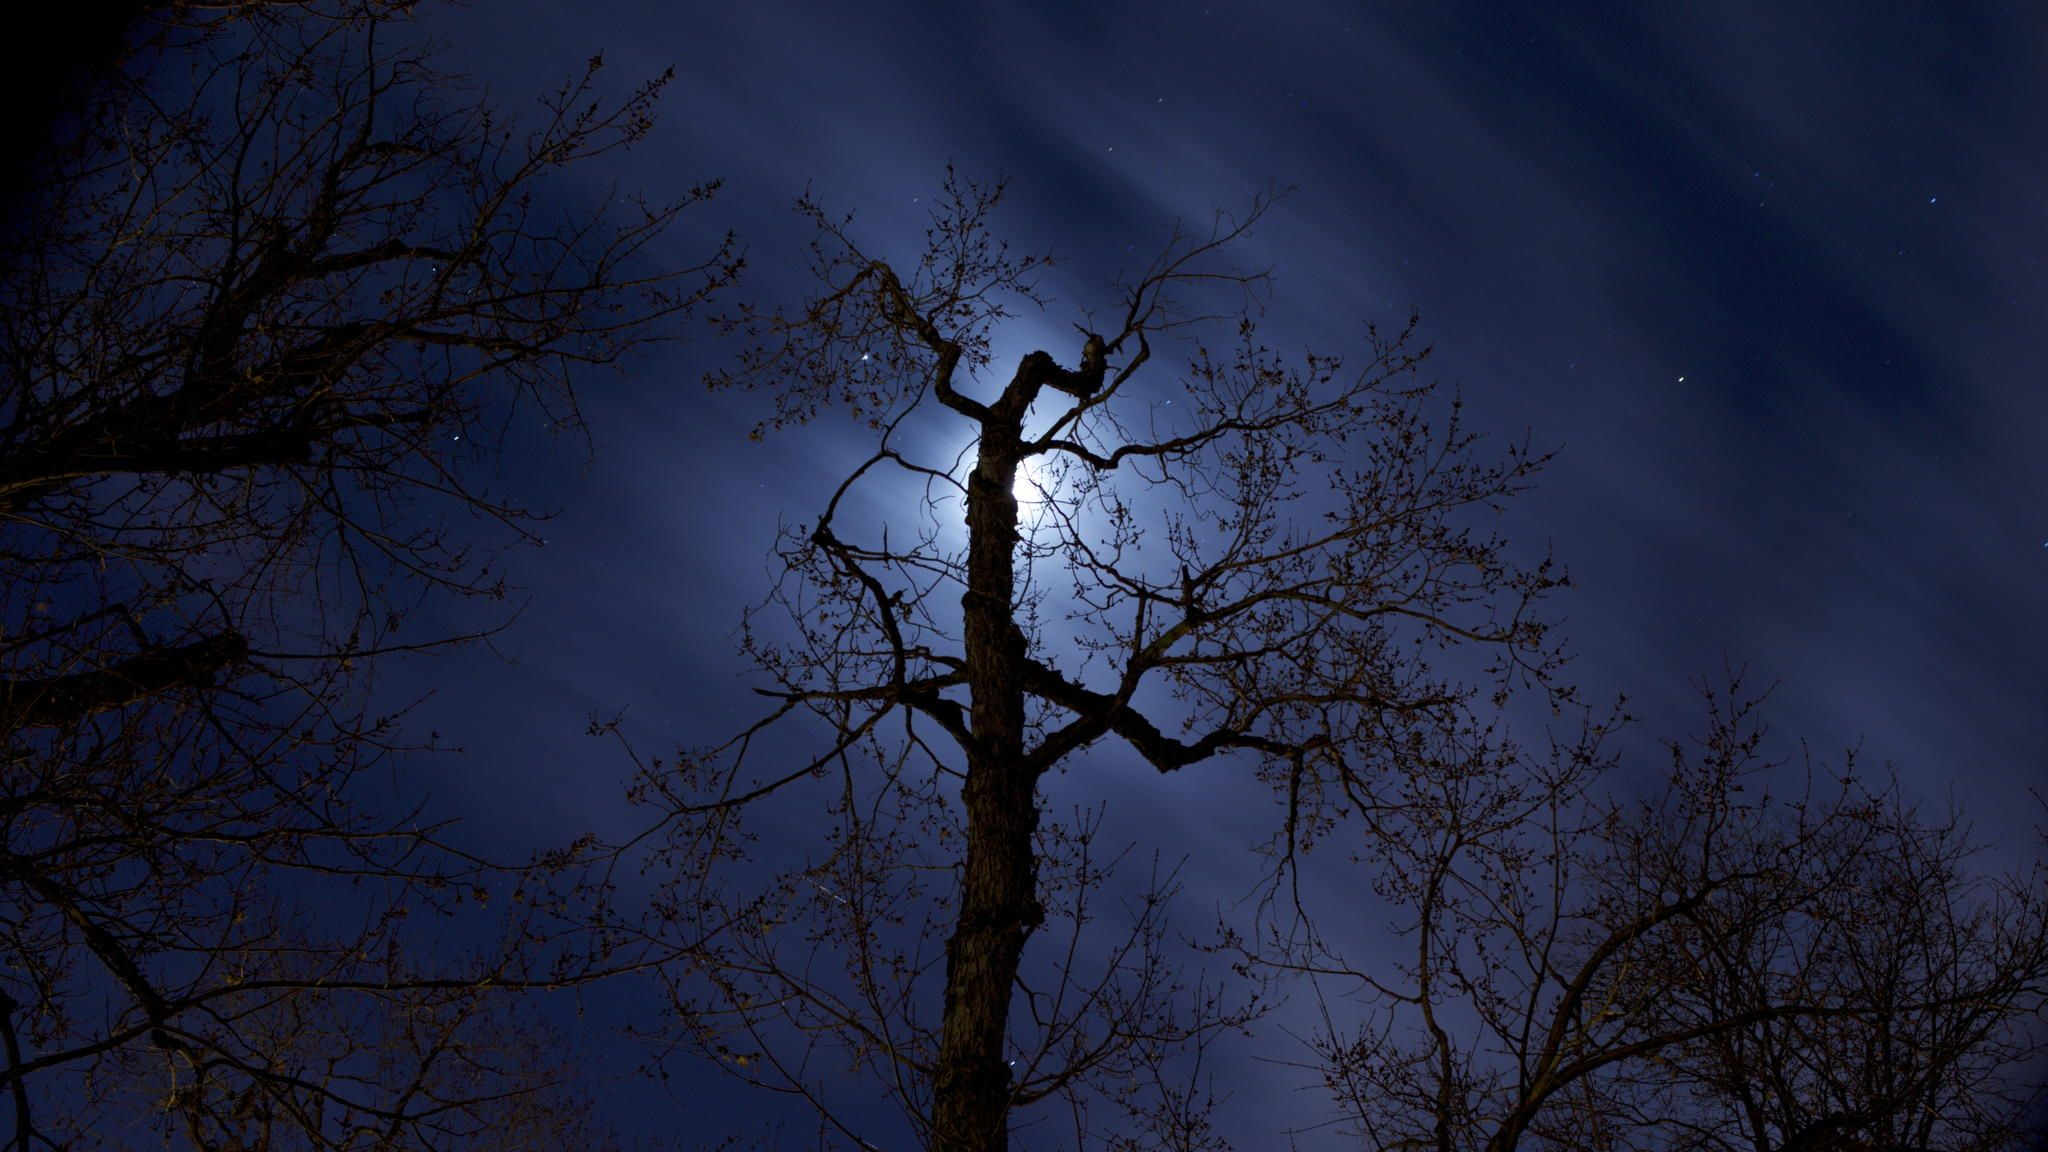 Moonlight by Neil Crowley on 500px